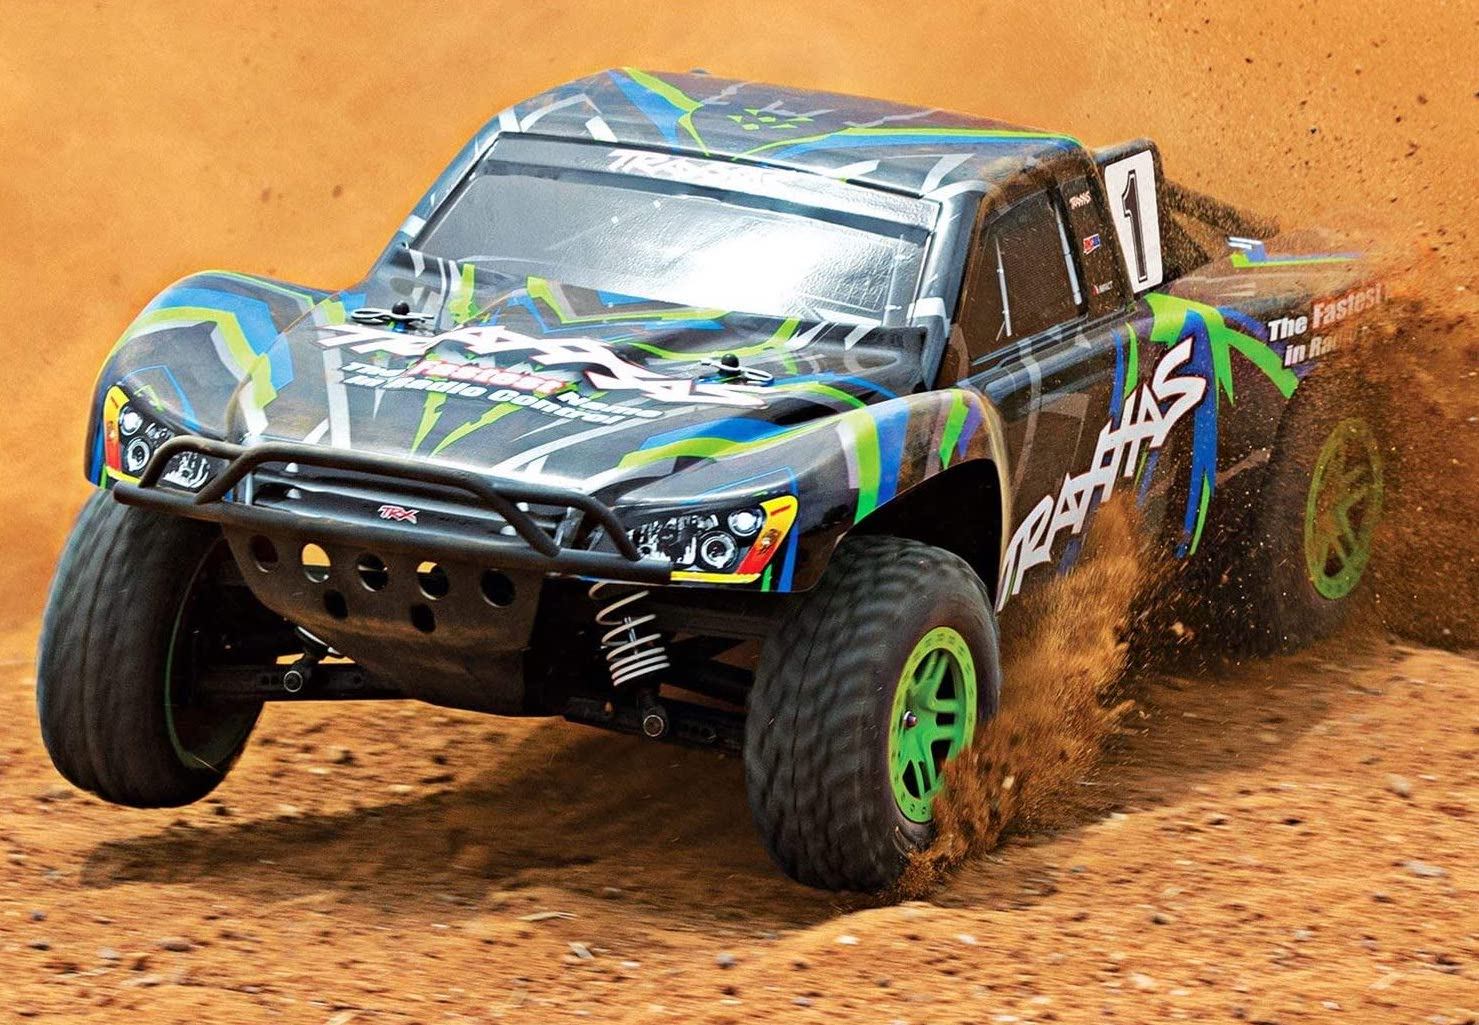 Traxxas Slash 4x4 - Piruetas Hobbies & Toys